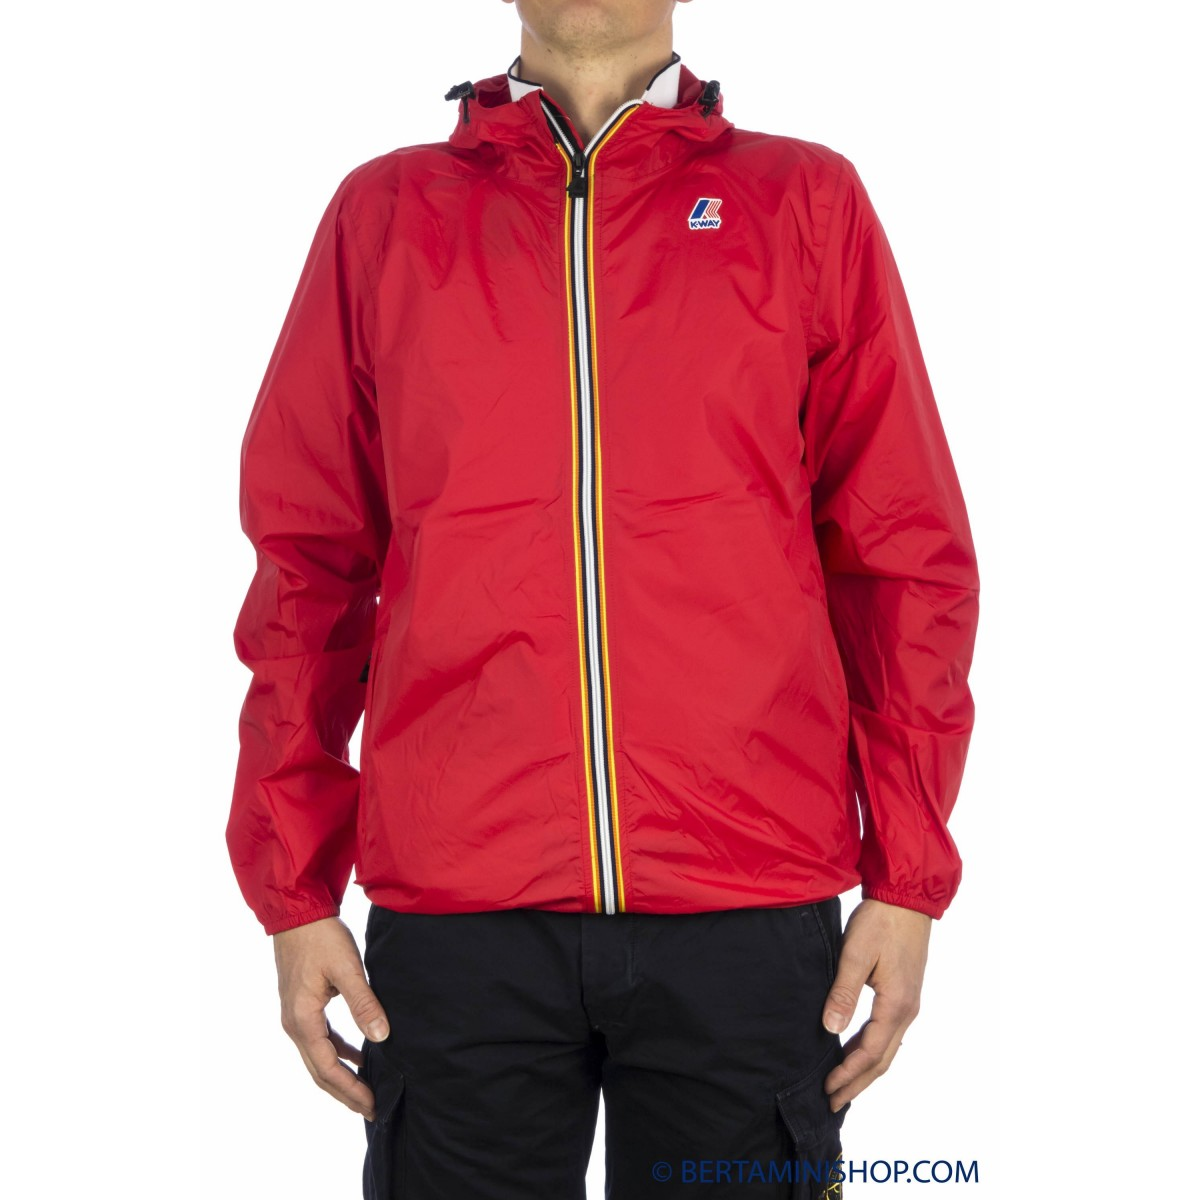 Leicht Sportsjacket K-Way Manner - Le Vrai 3.0 Claude K004Bd0 Over K08 - Red